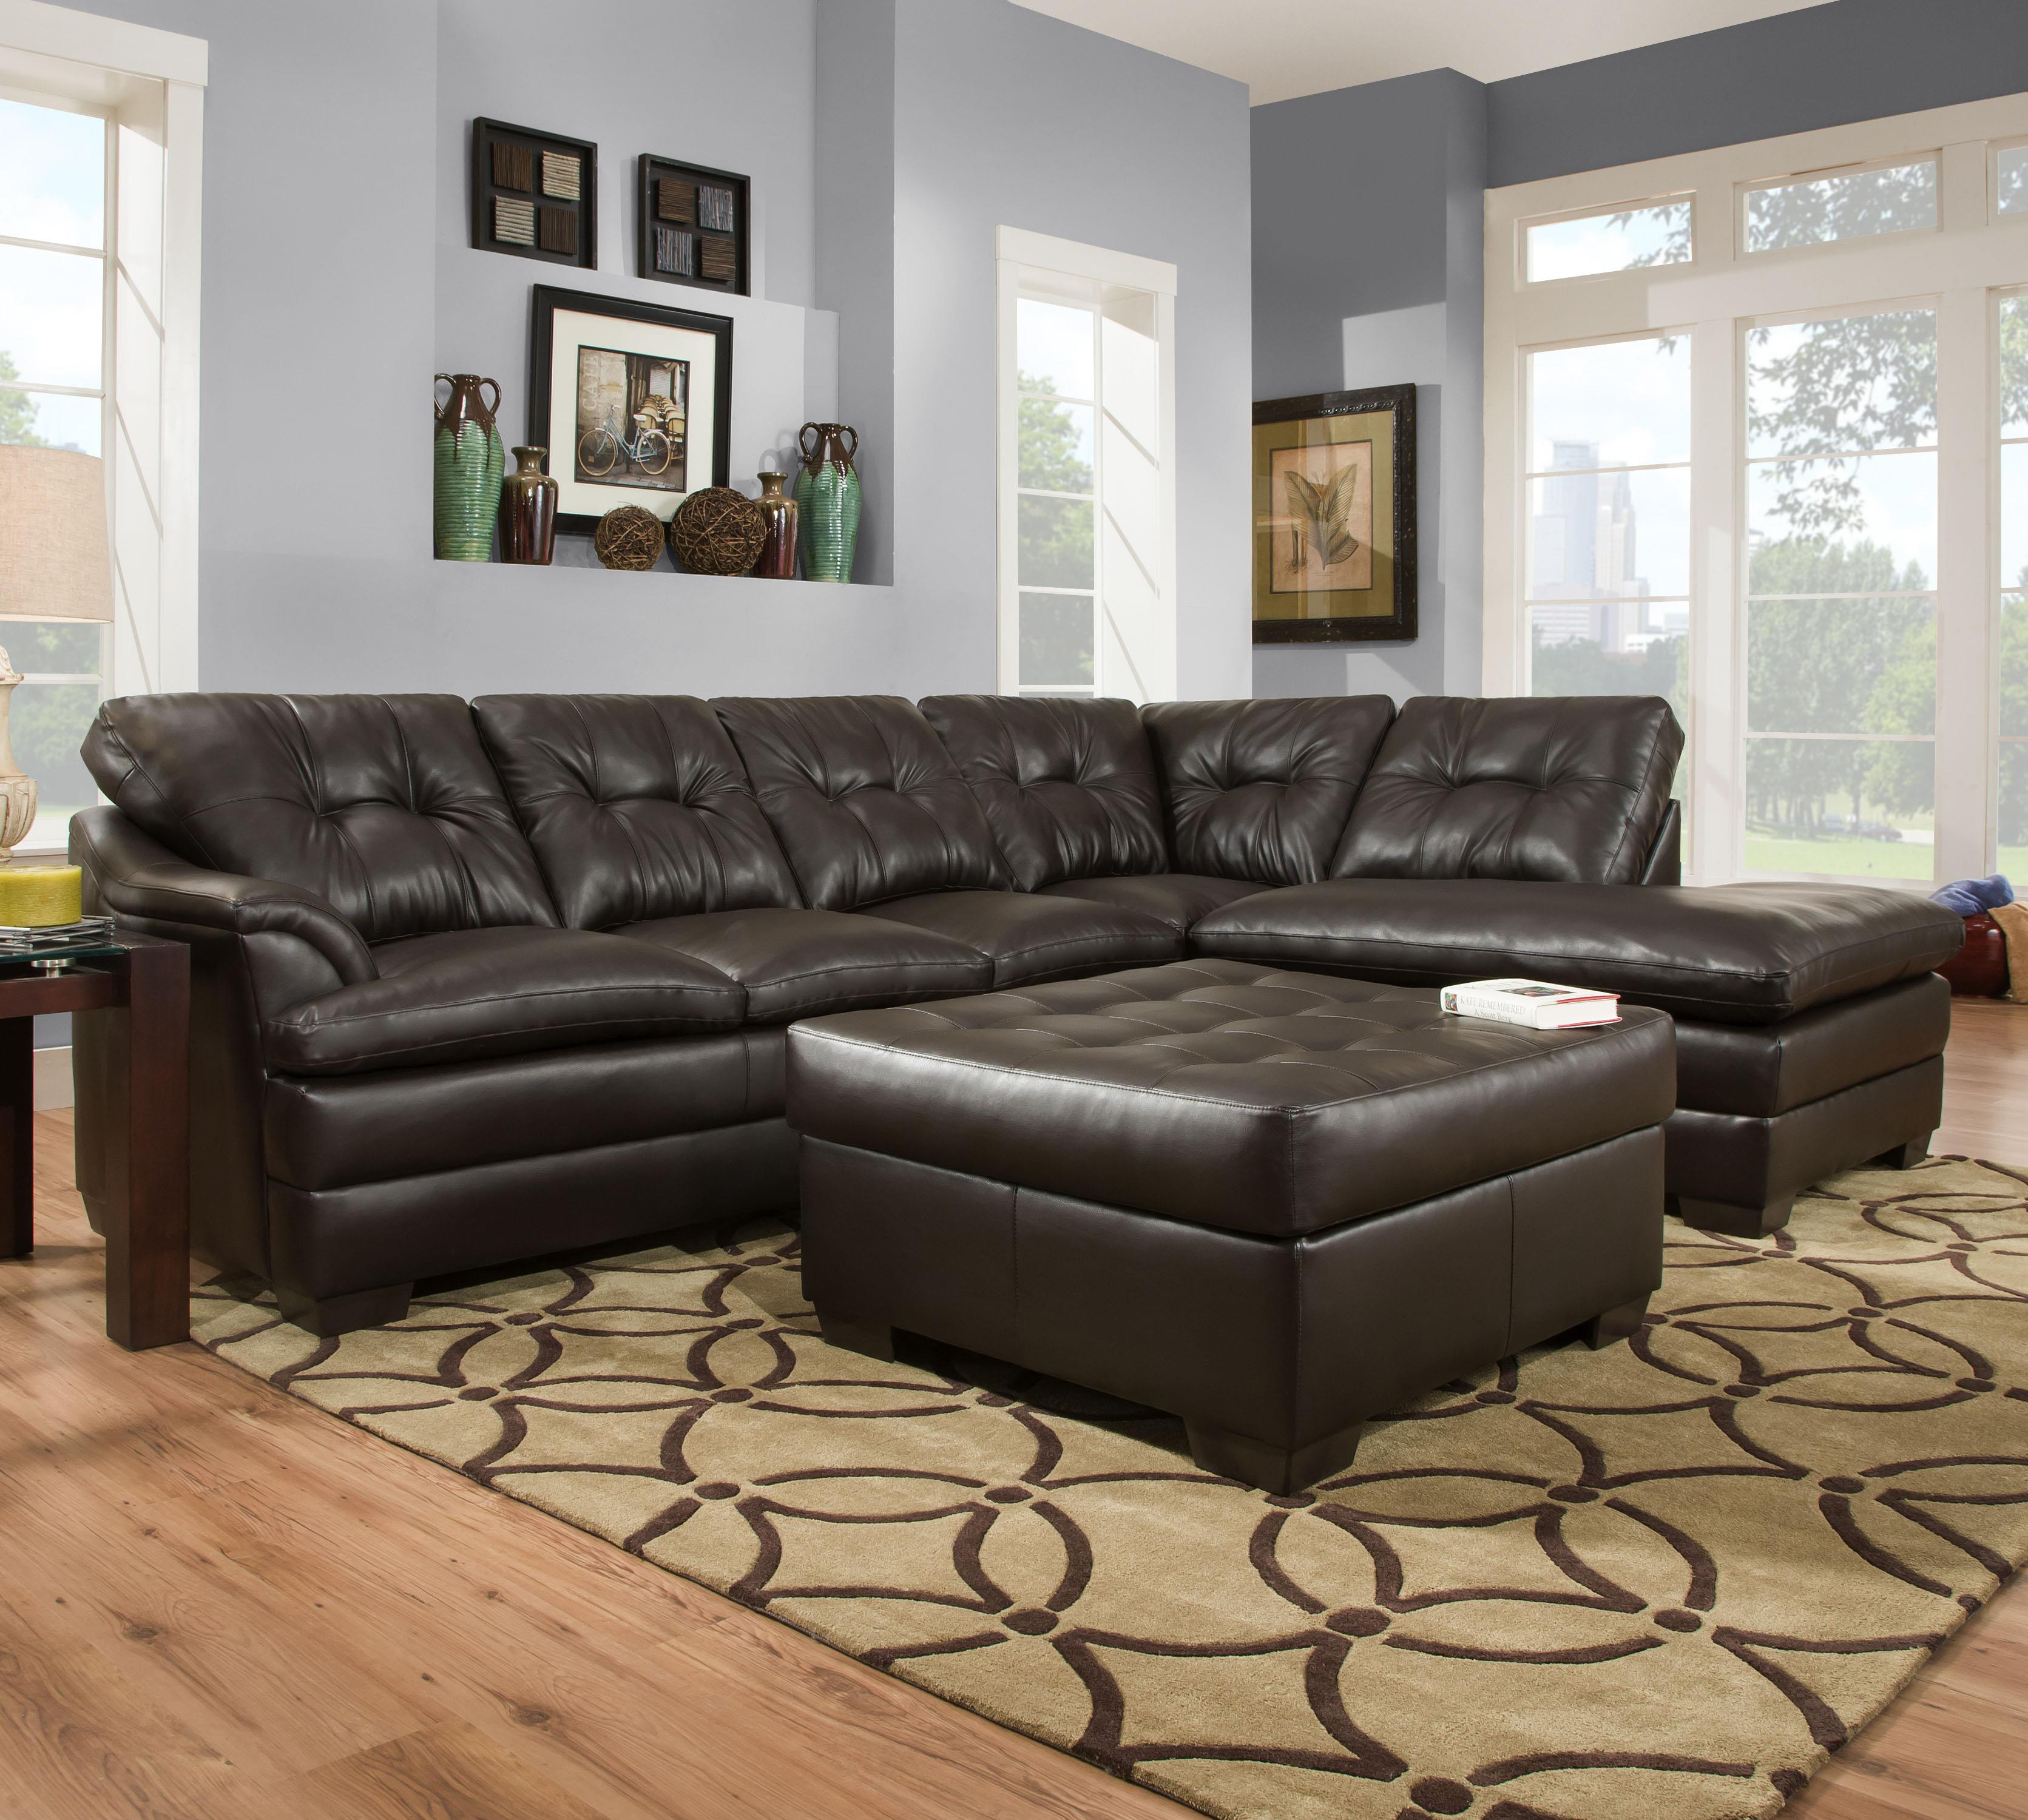 Simmons Upholstery 5122 Transitional Sectional Sofa - Item Number: 5122LAFSofa+RAFBump-Espresso